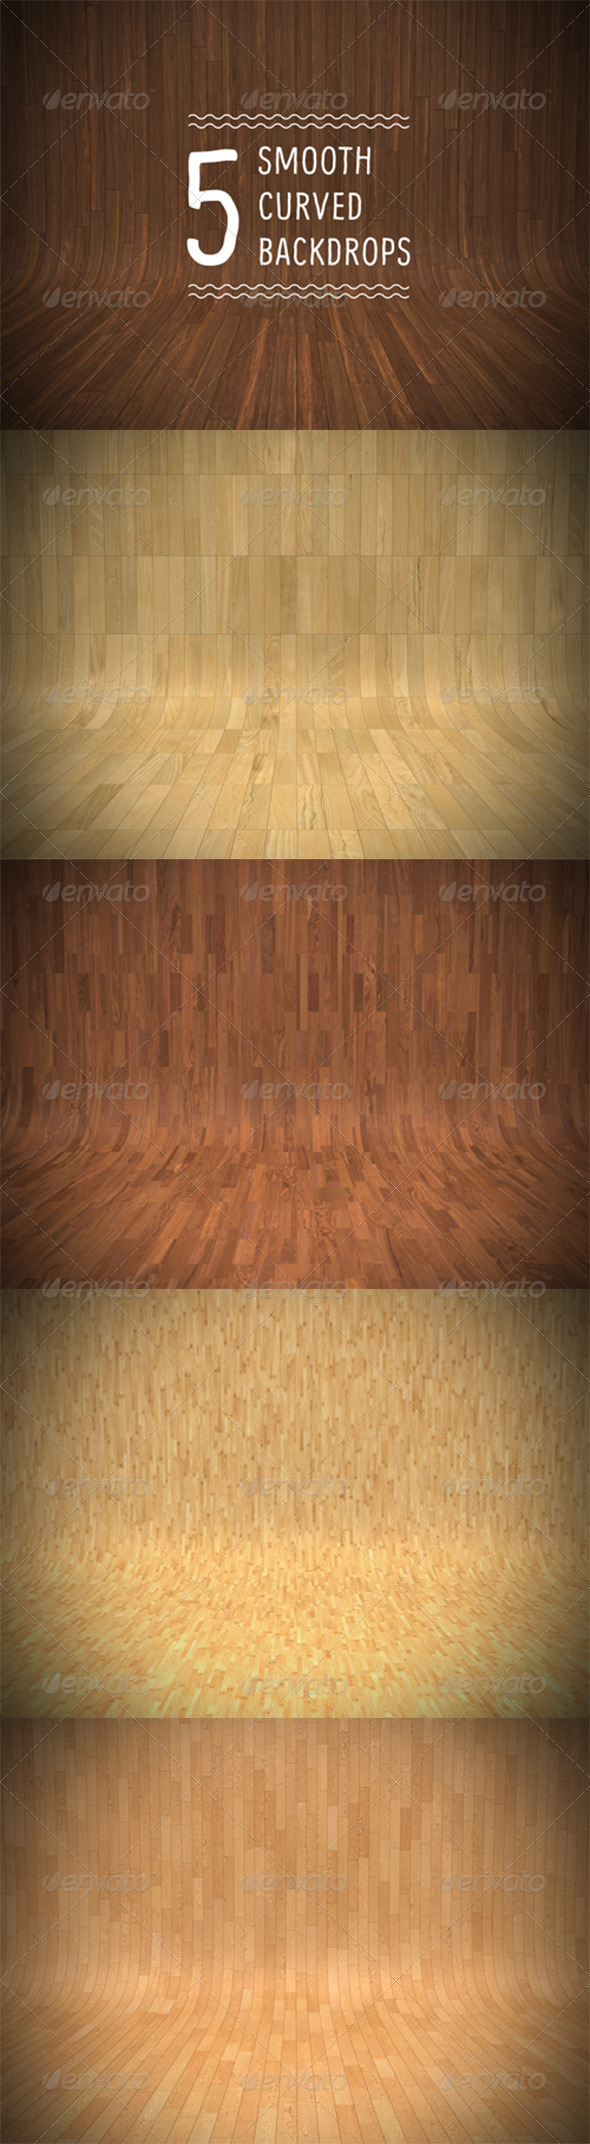 Smooth Curved Wooden Backdrops